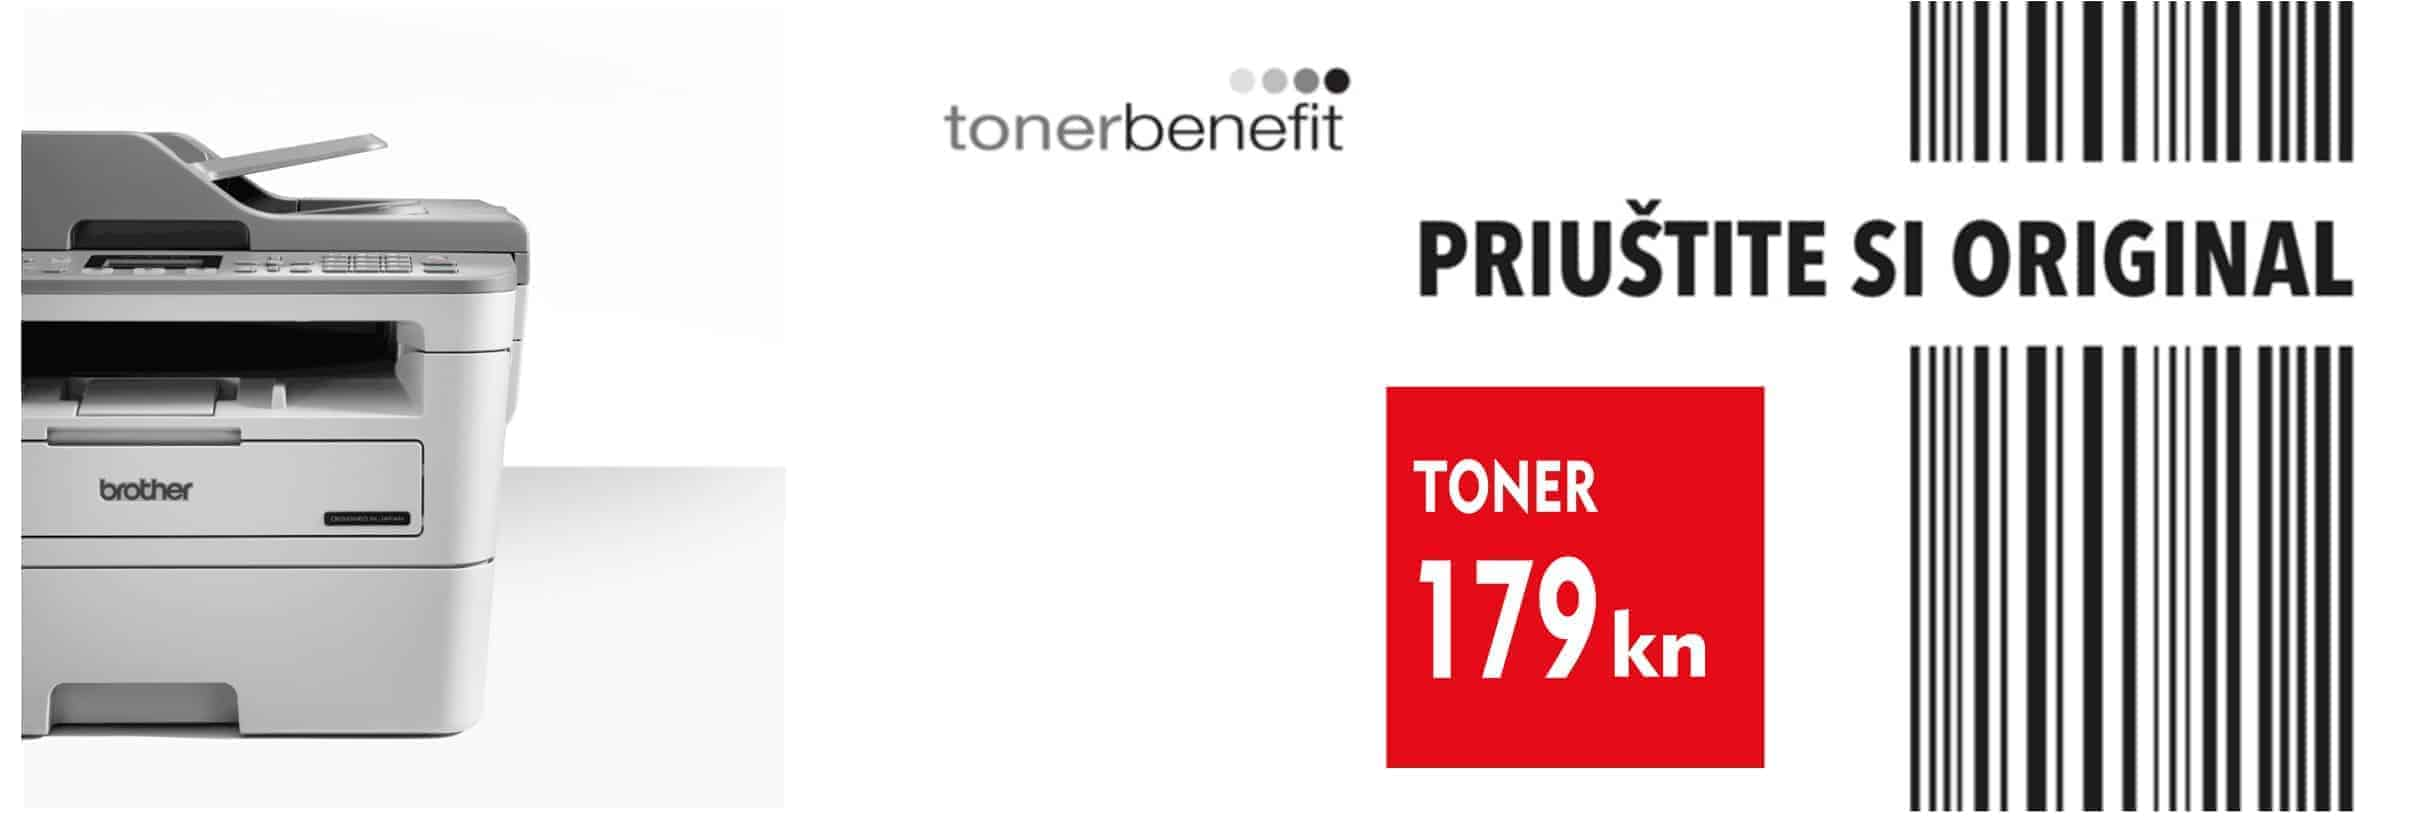 Brother TonerBenefit serija 179kn originalni toner MFC-B7715DW © All Rights Reserved M.G. Electronic d.o.o. 2020.